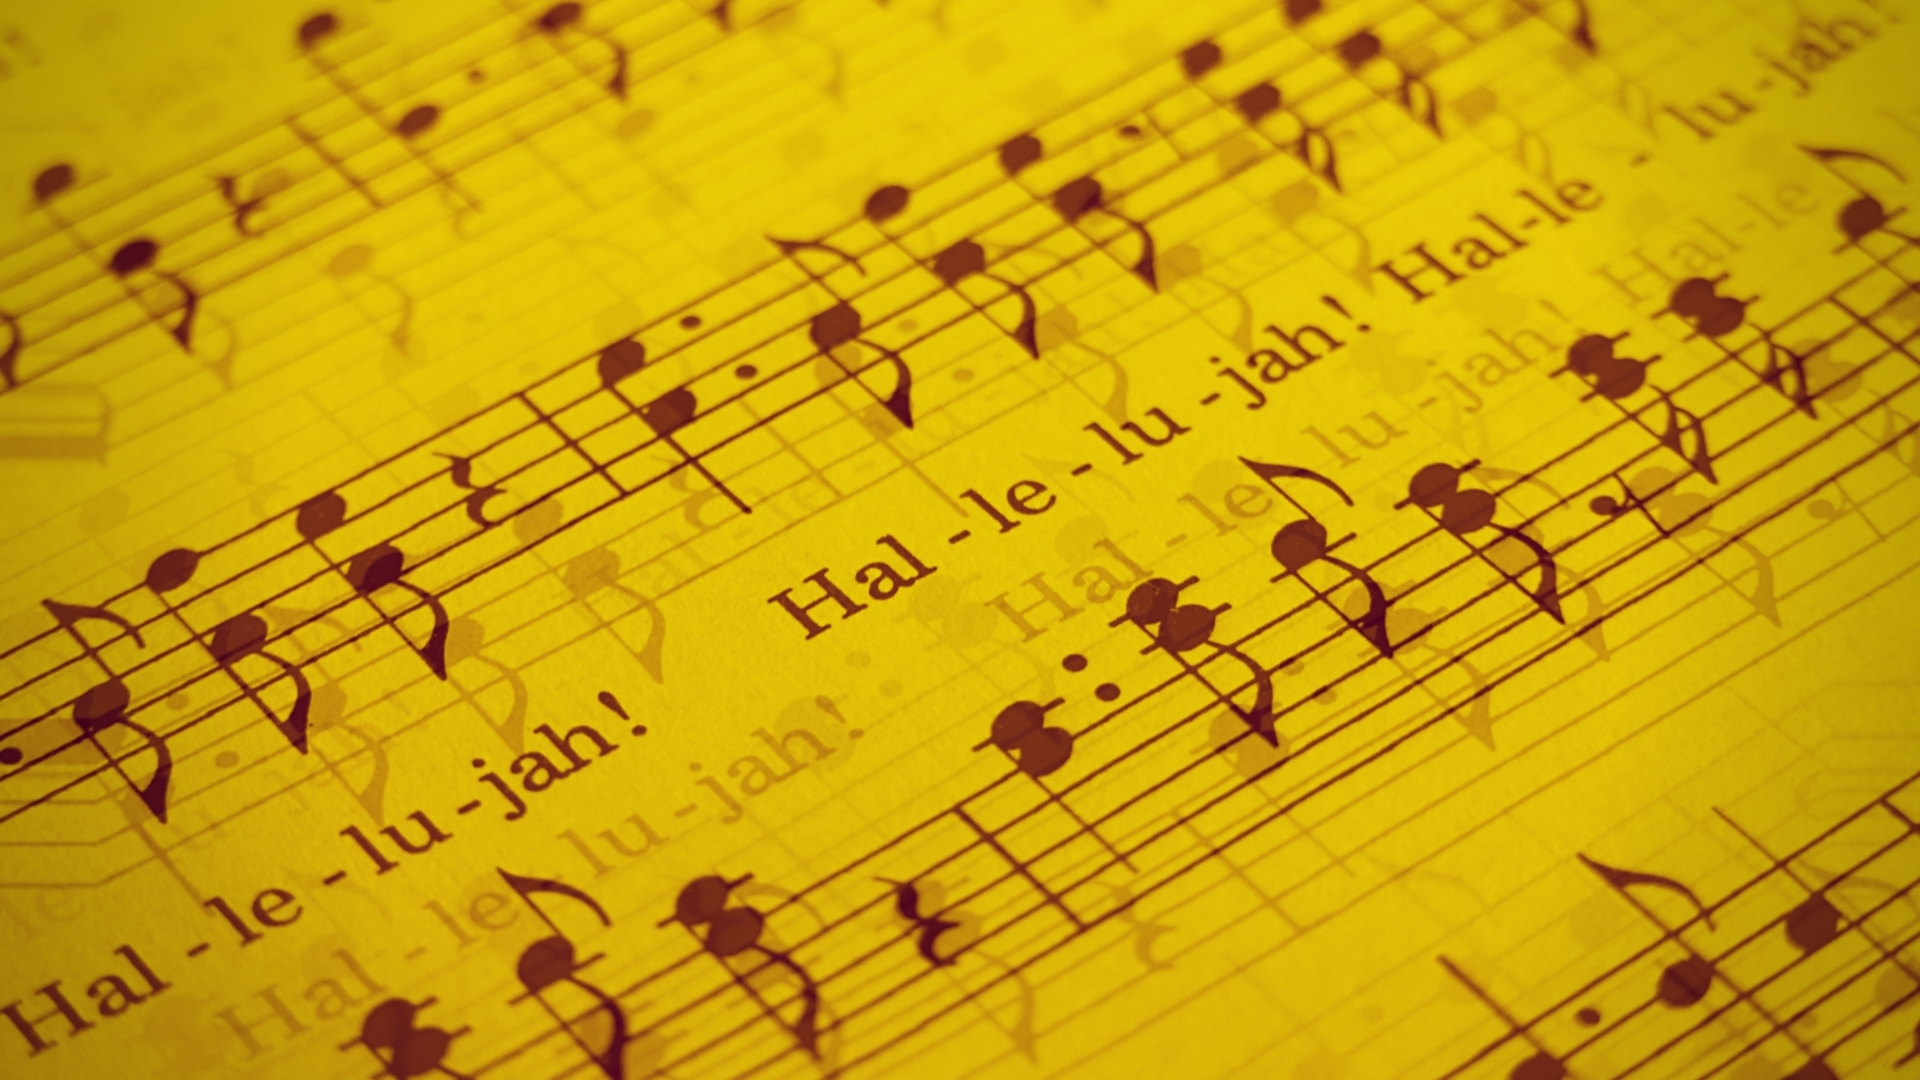 Hallelujah - lyrics and notes on a manuscript in yellow